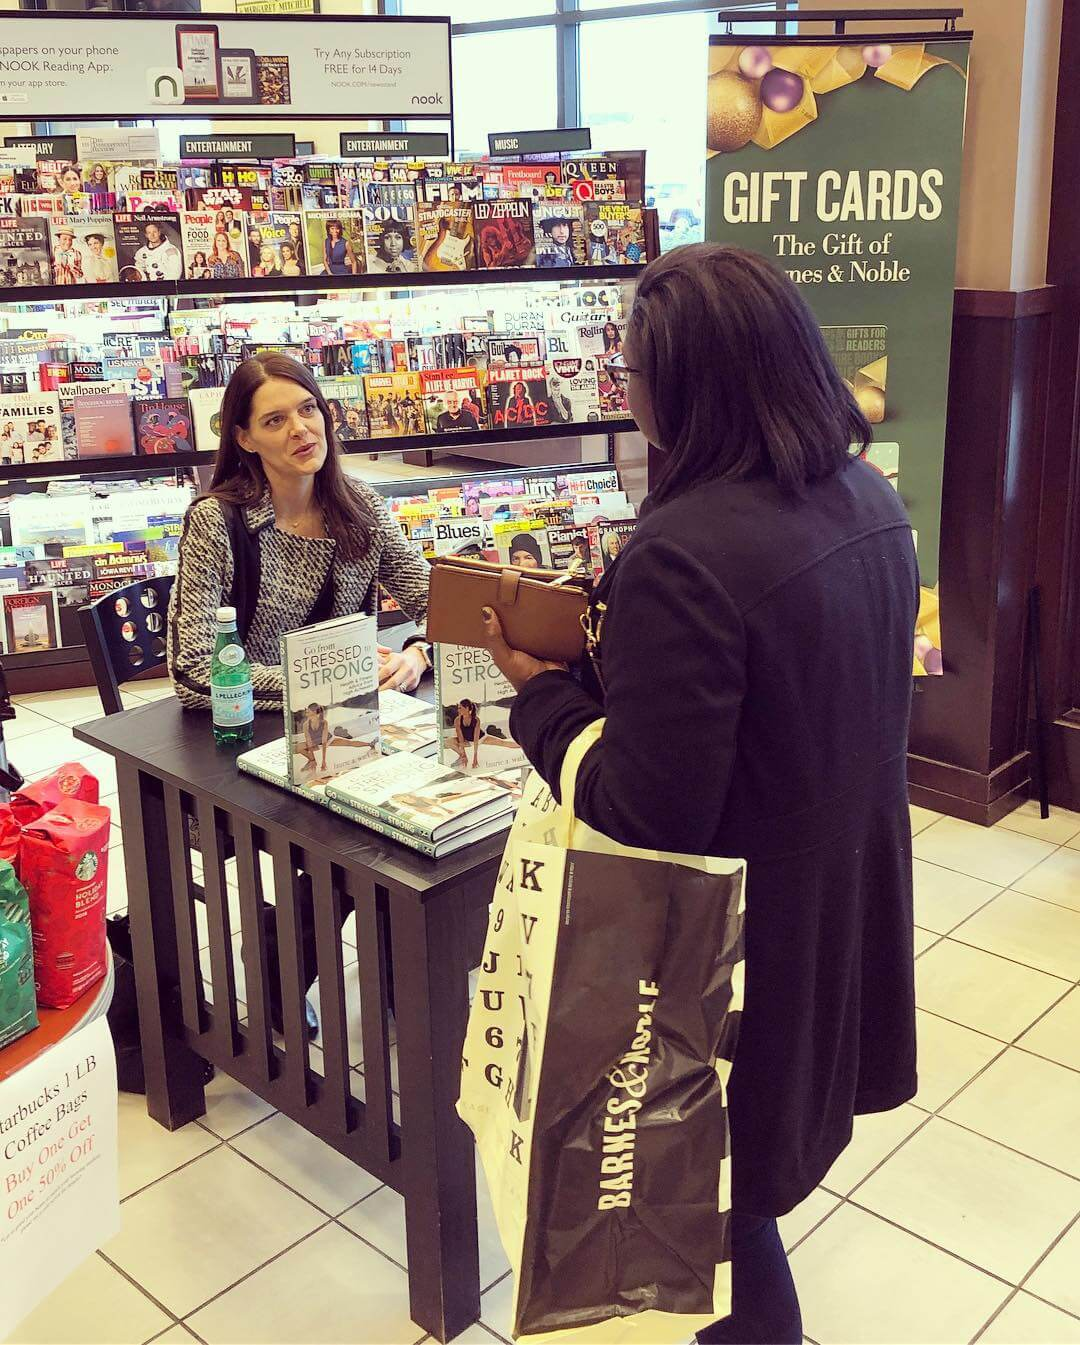 LAW with a fan and reader at Barnes & Noble, Harrisonburg, VA